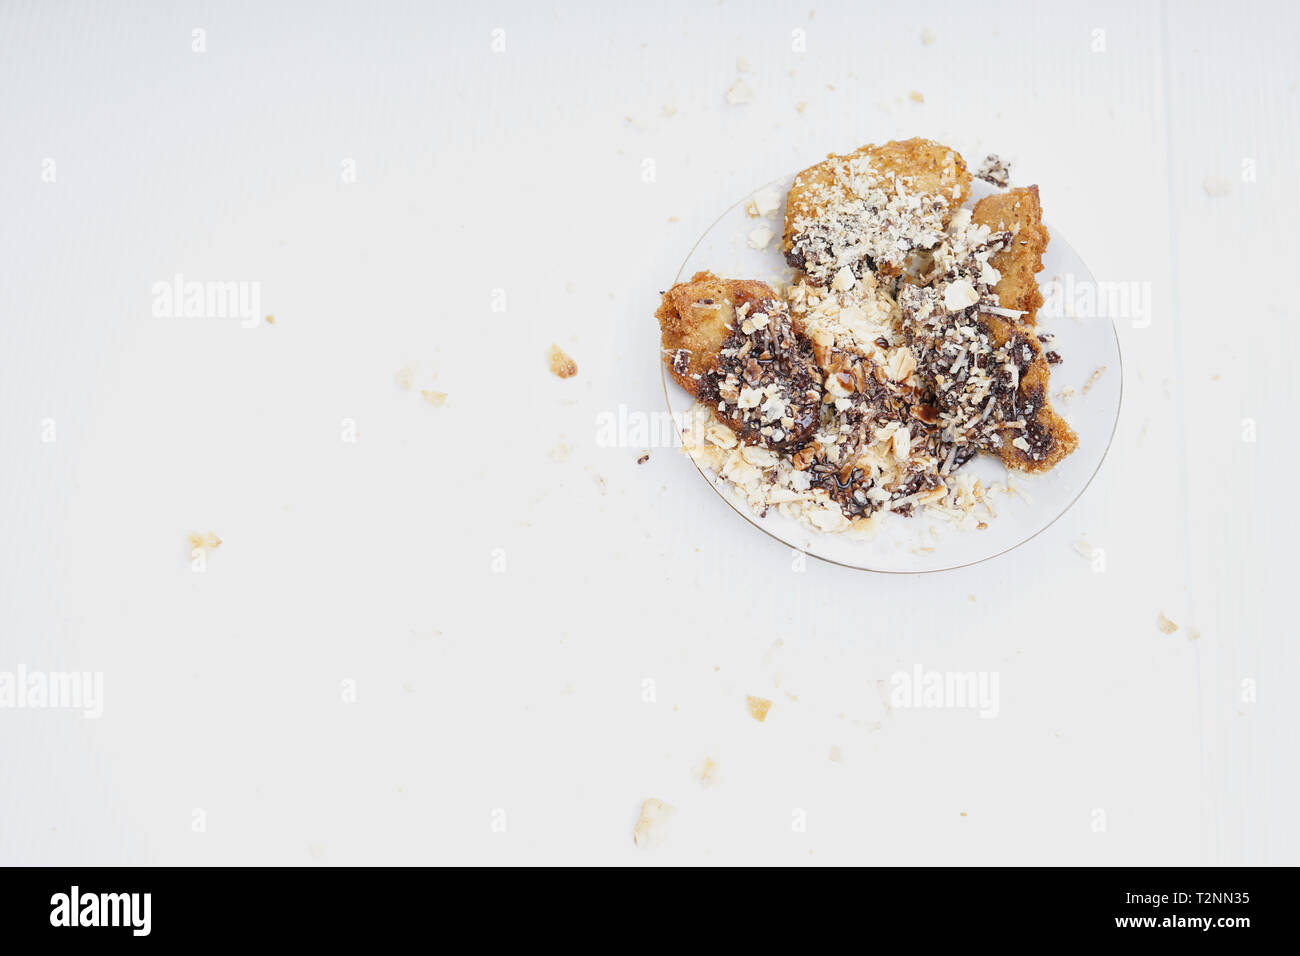 Deep Fried Banana Fritters With Chocolate And Cheese Stock Photo Alamy